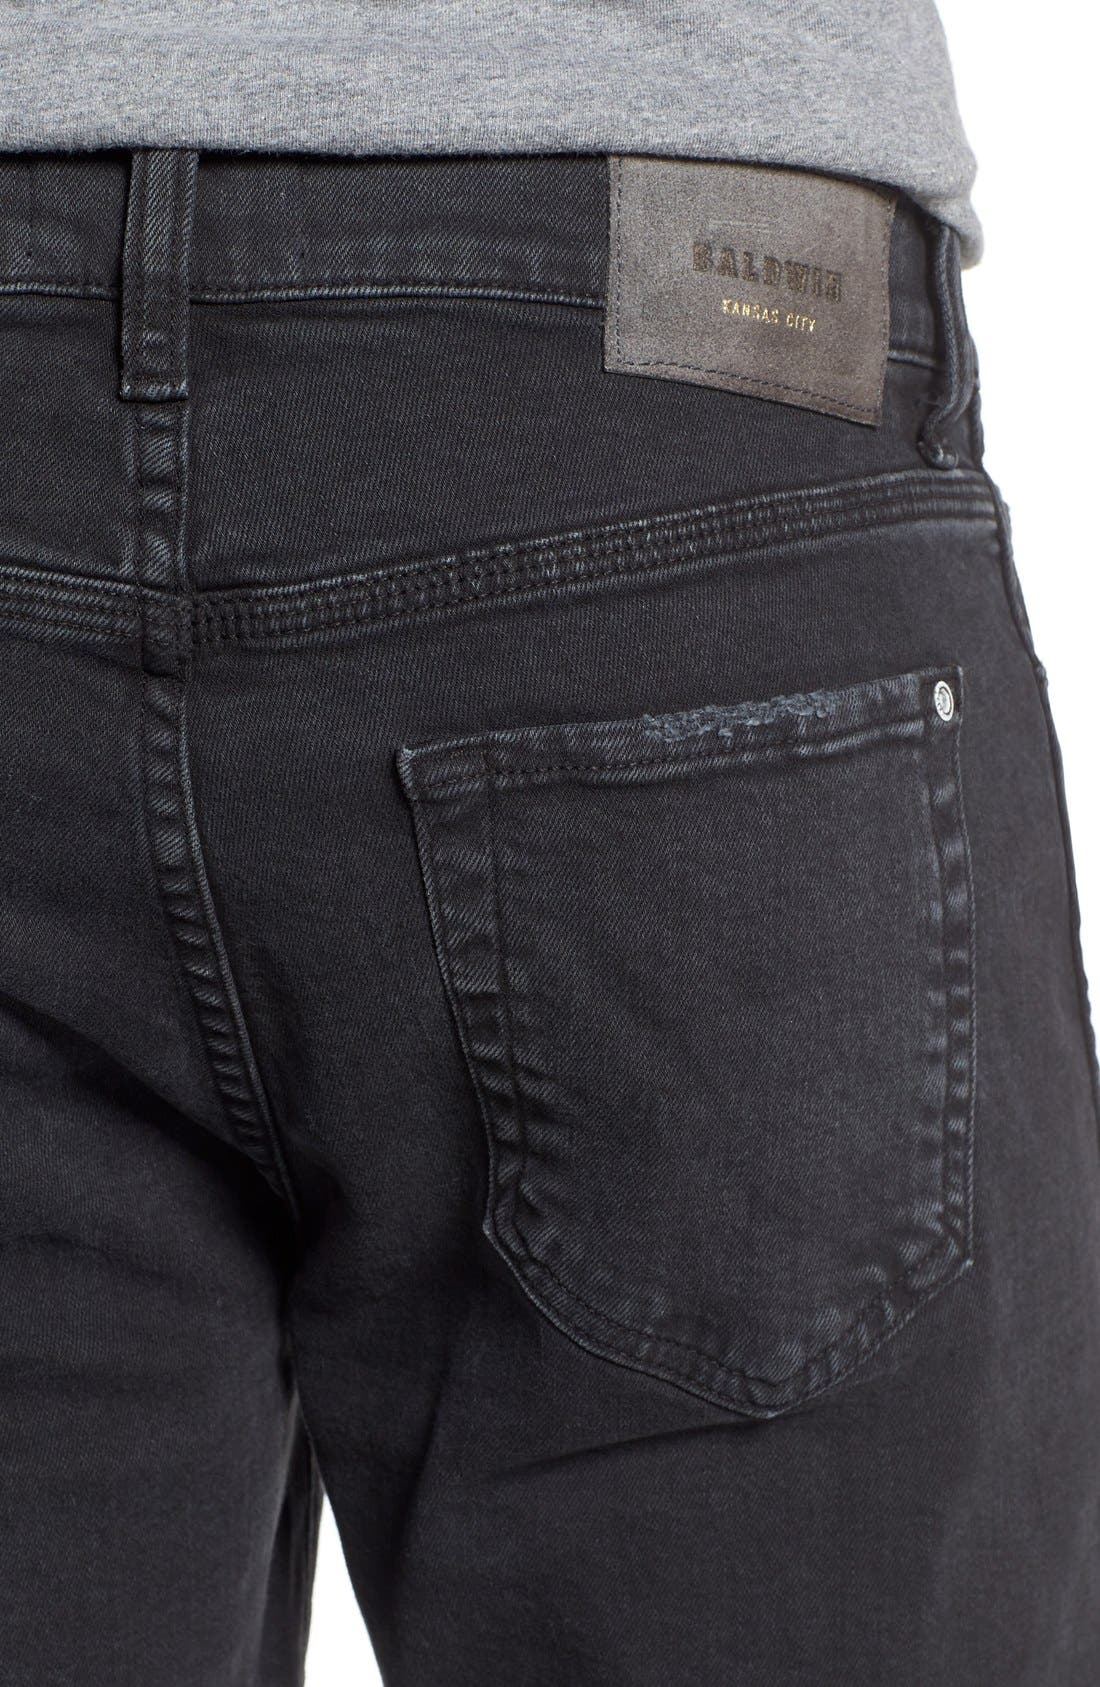 'Henley' Slim Fit Jeans,                             Alternate thumbnail 7, color,                             020